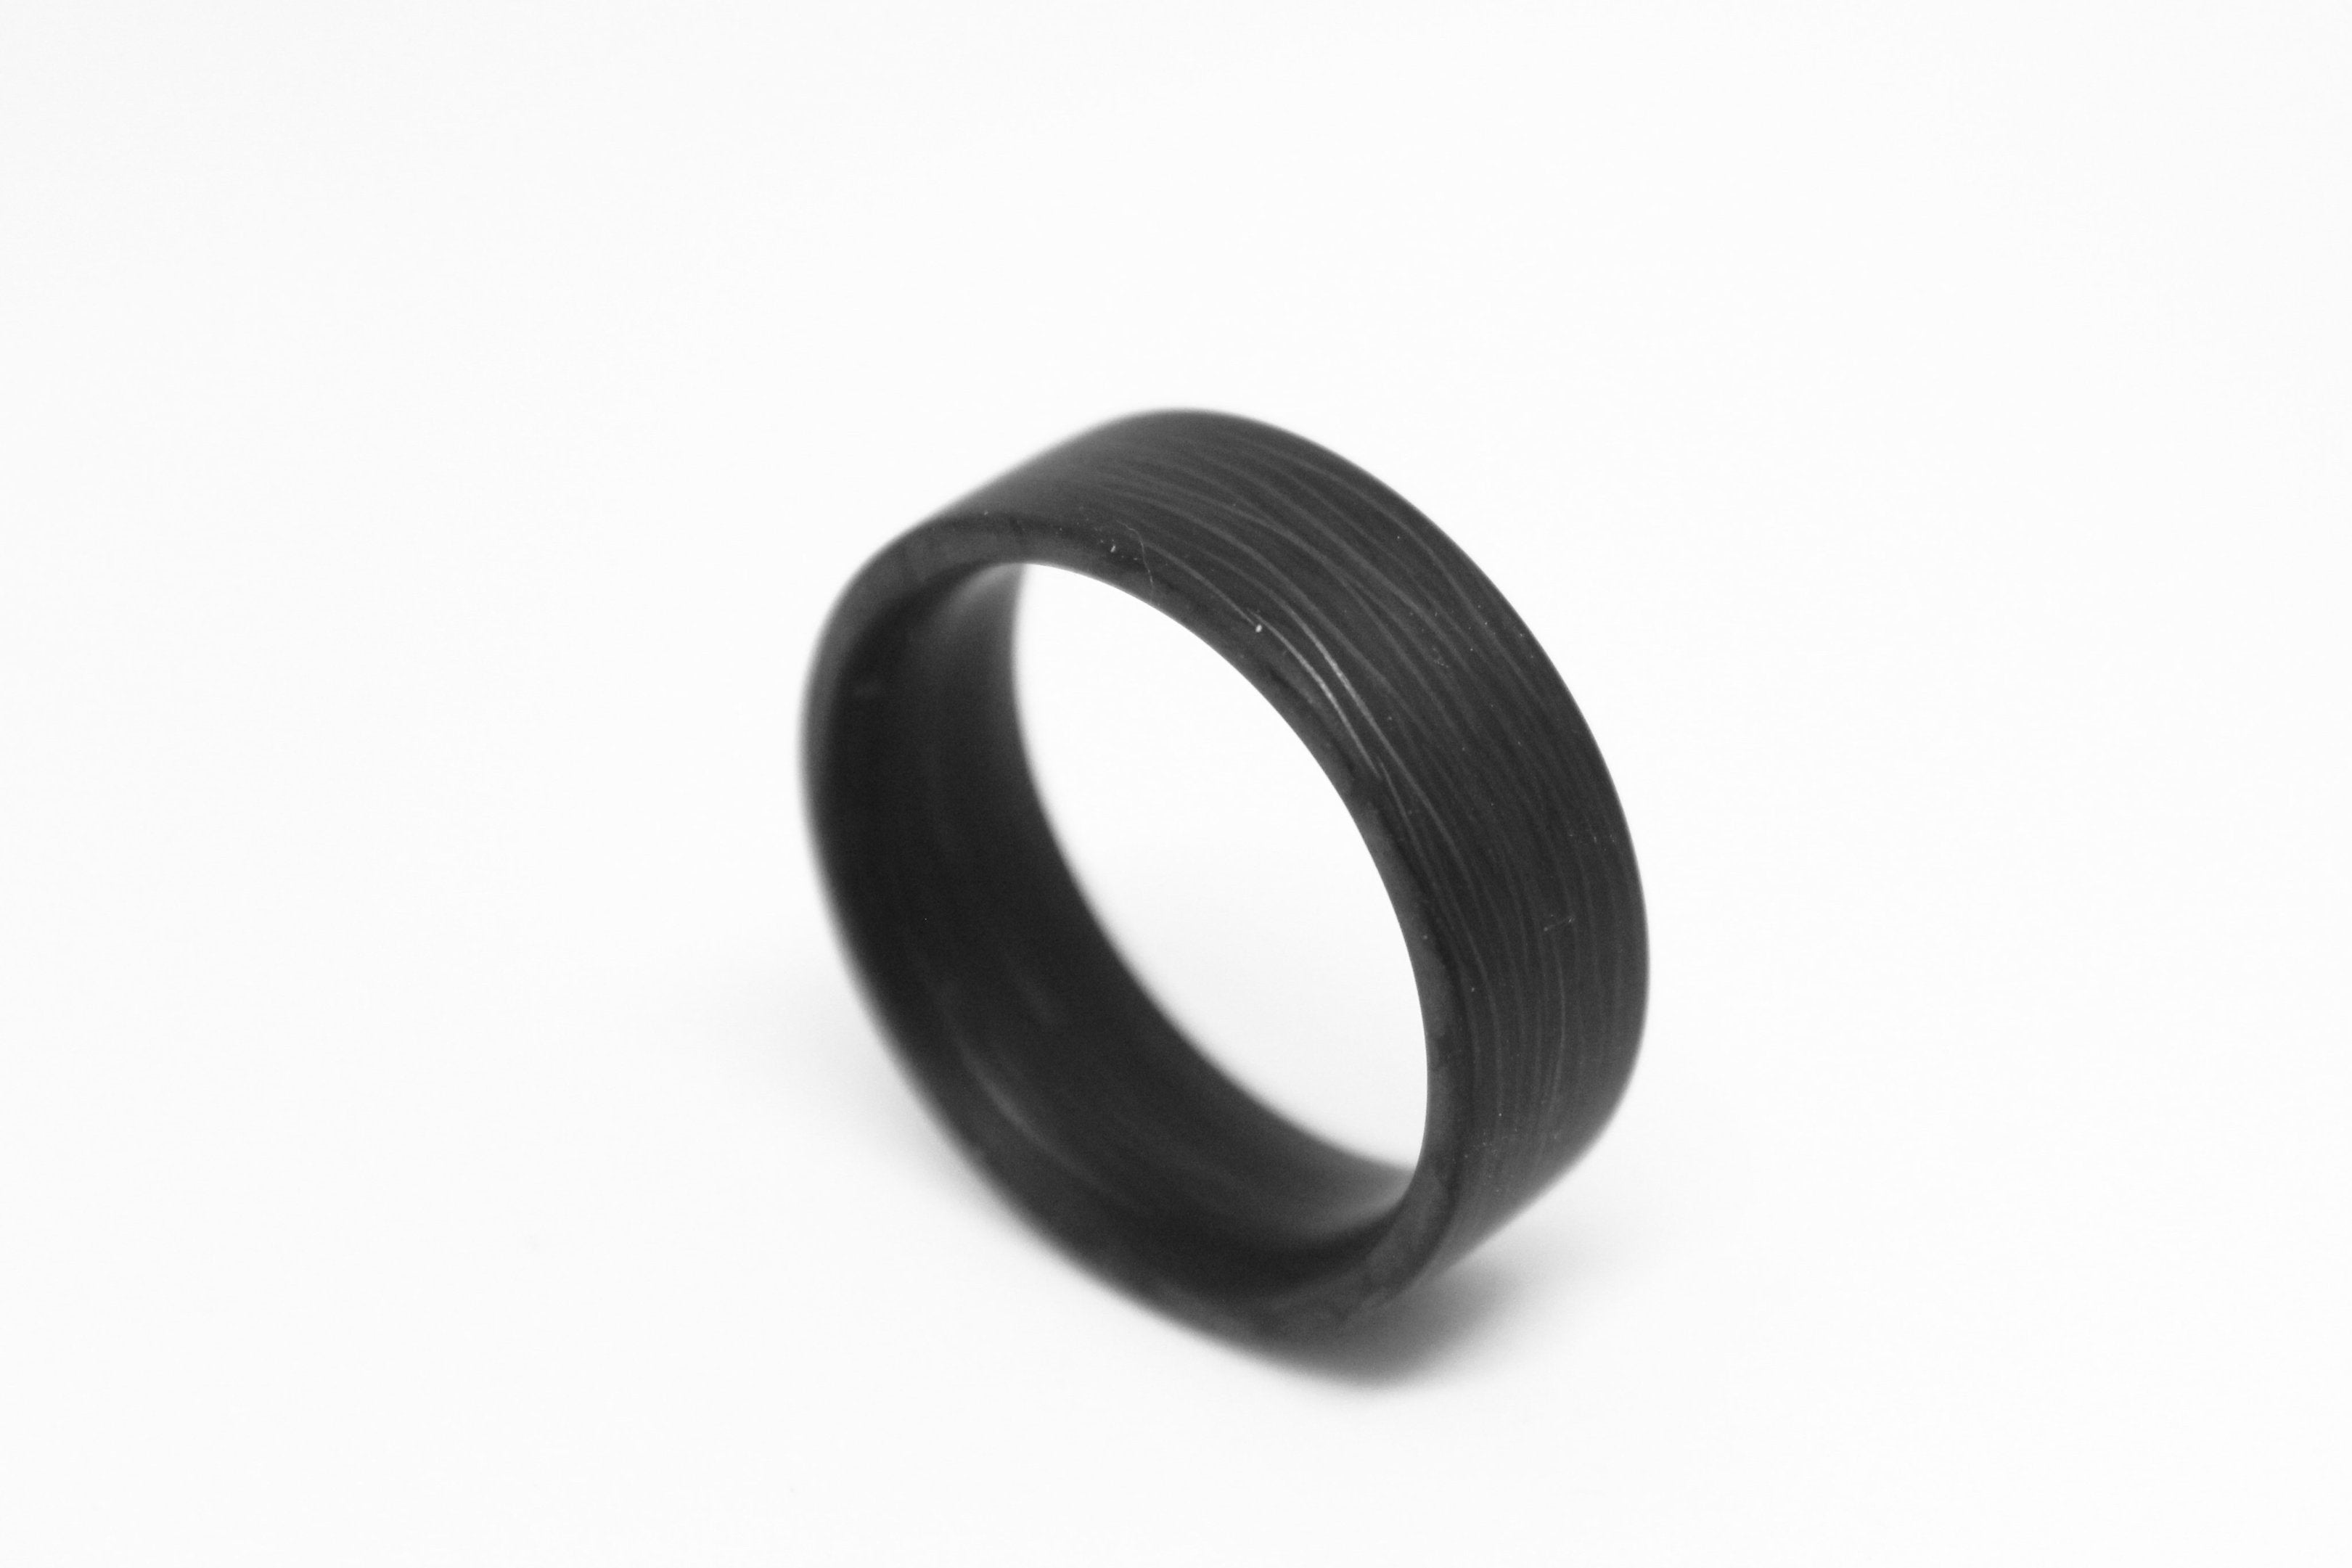 Size 11.5 Space X Carbon Fiber Ring